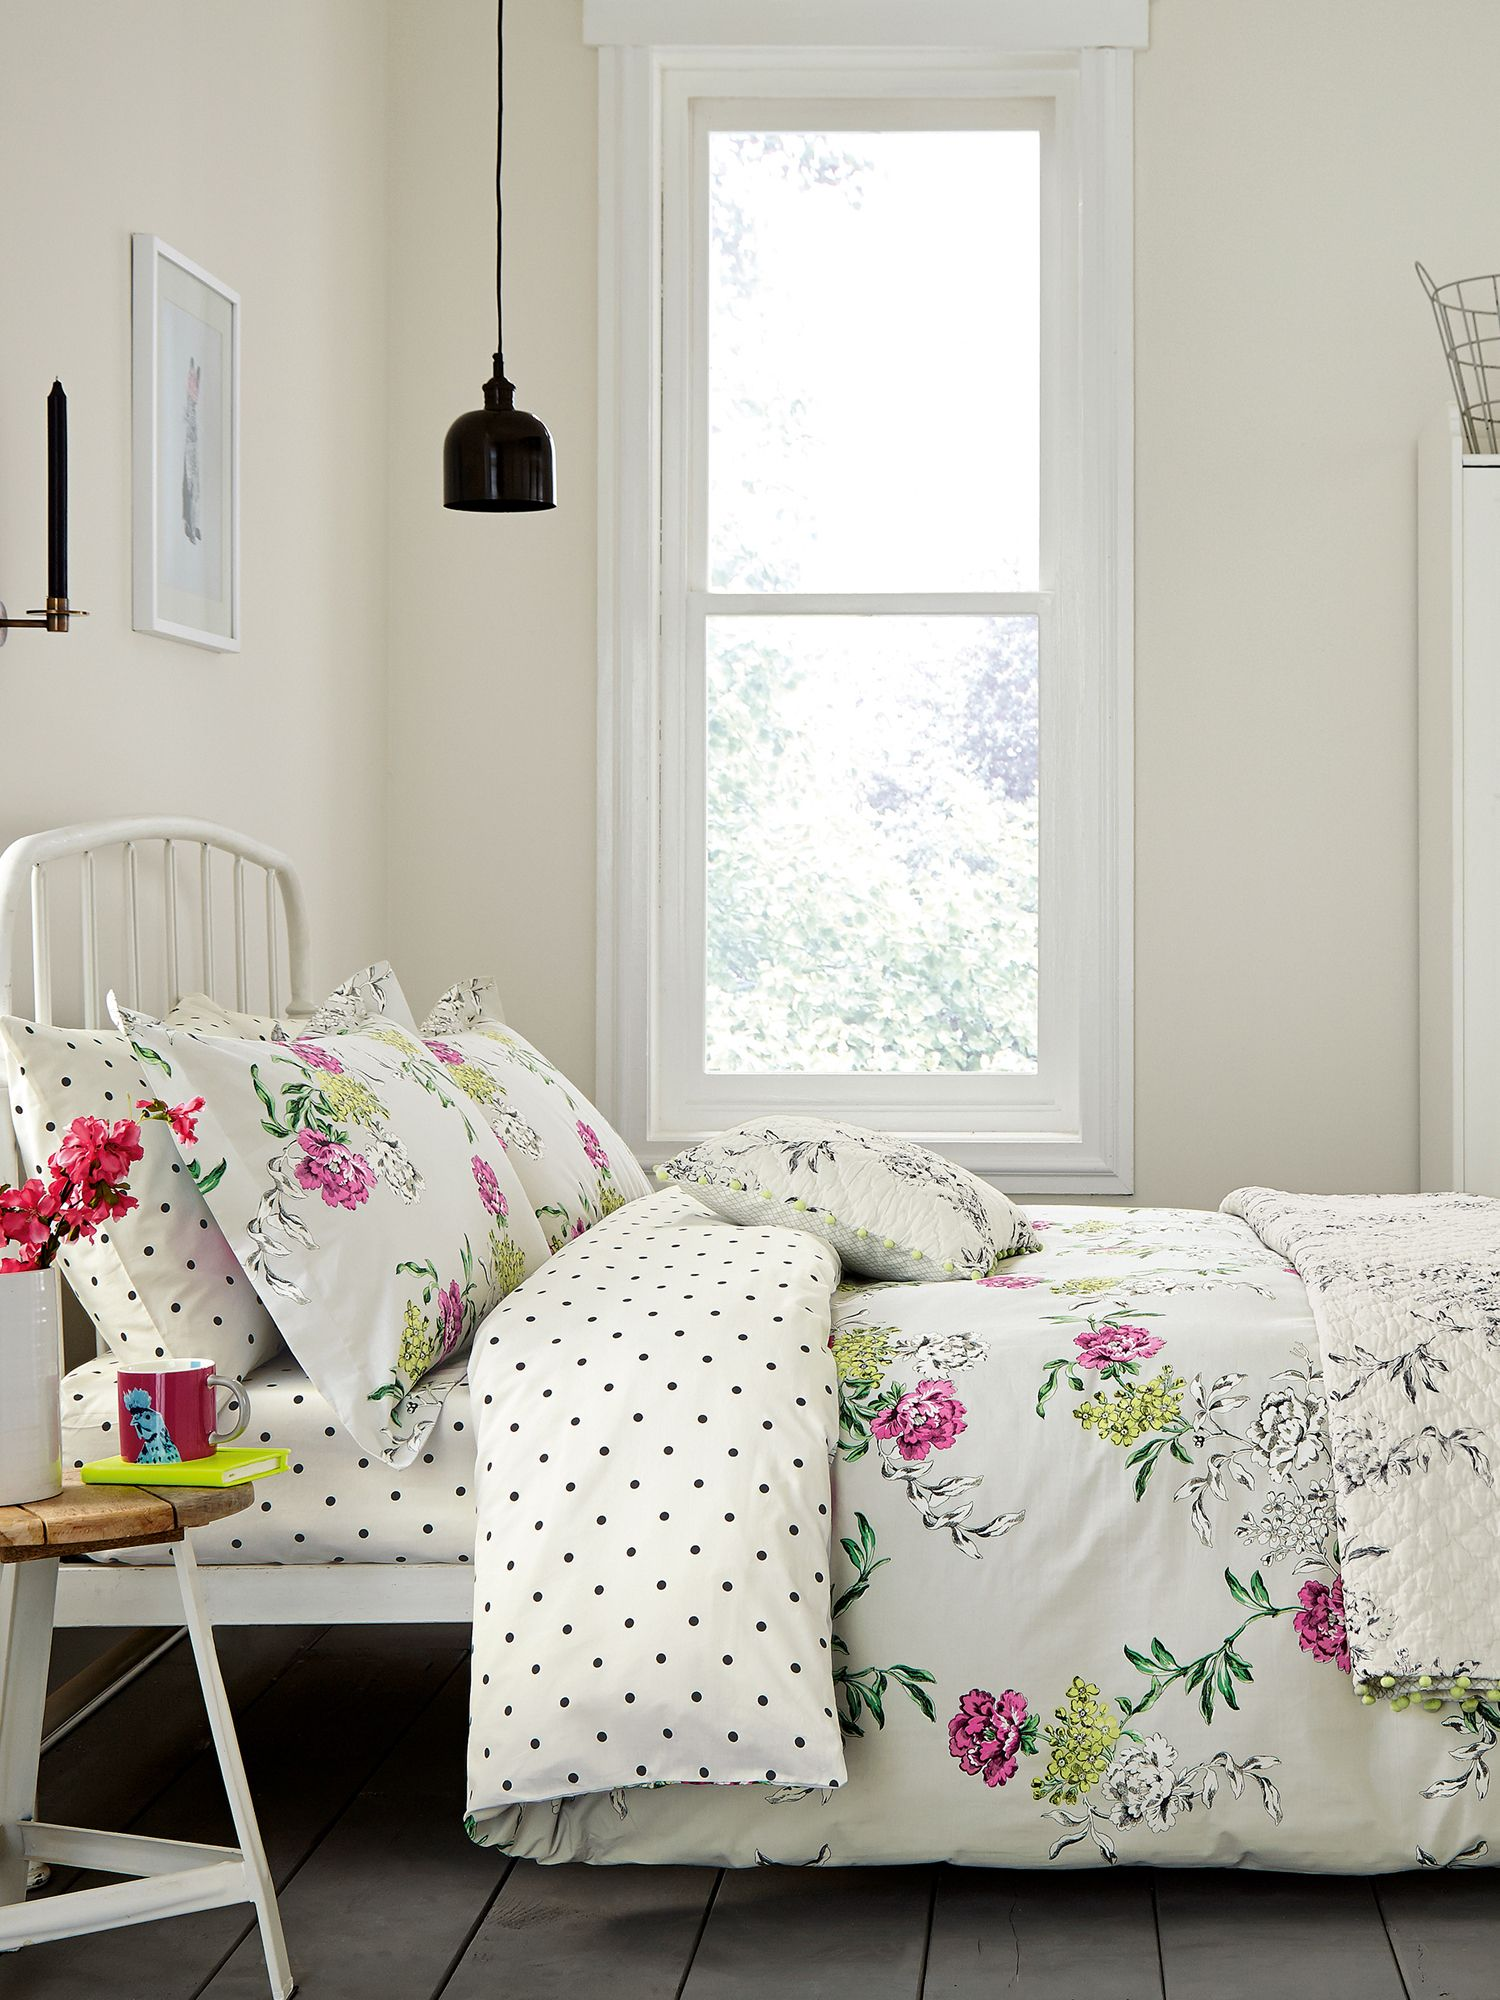 Image of Joules Buckingham floral duvet cover